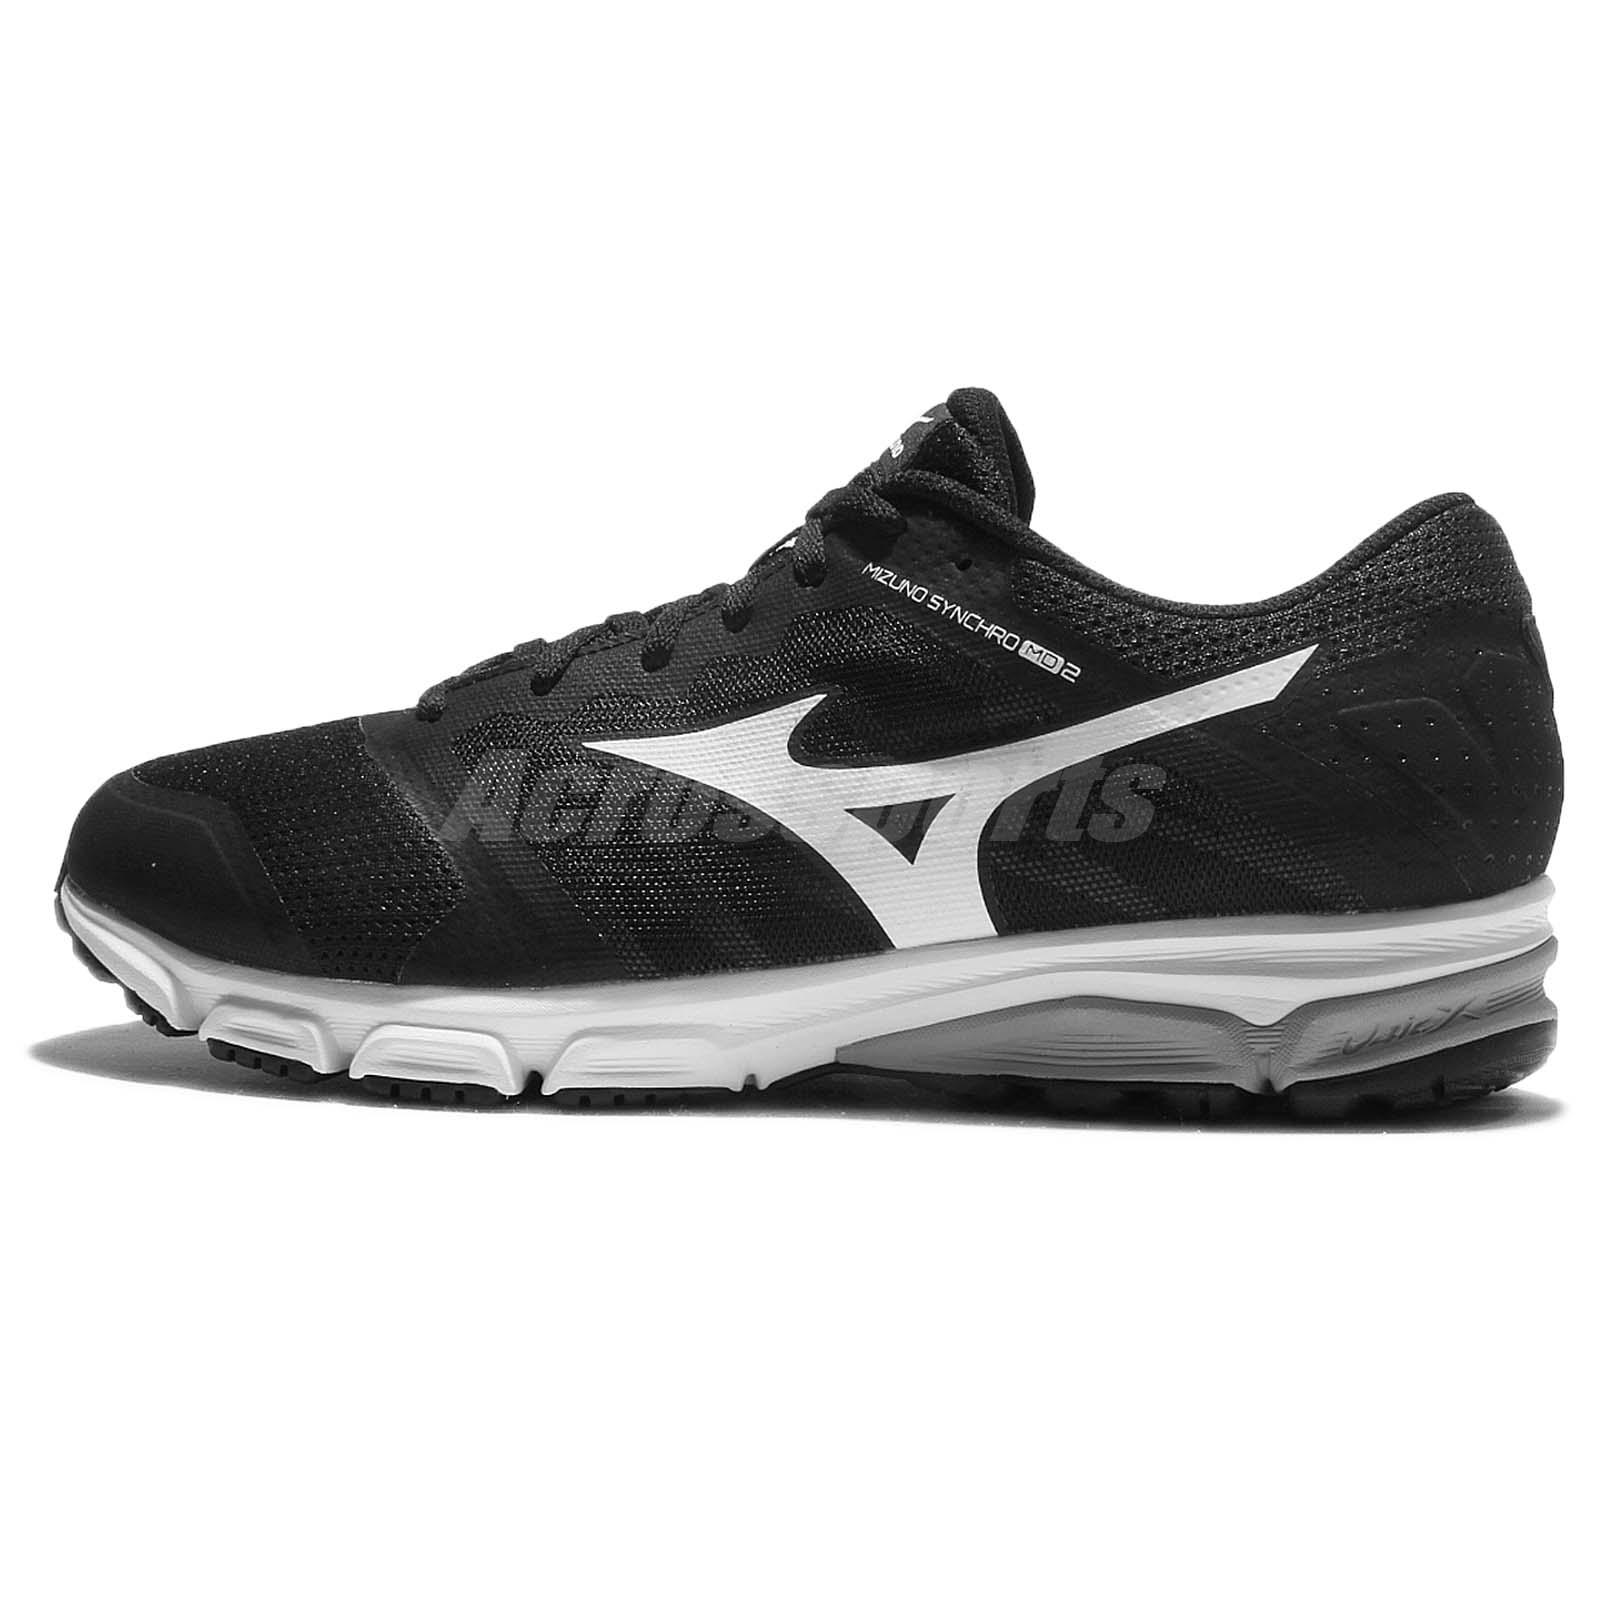 Mizuno Synchro MD 2 Black White Men Running Shoes Sneakers Trainers  J1GE17-1802 5ce34d552513